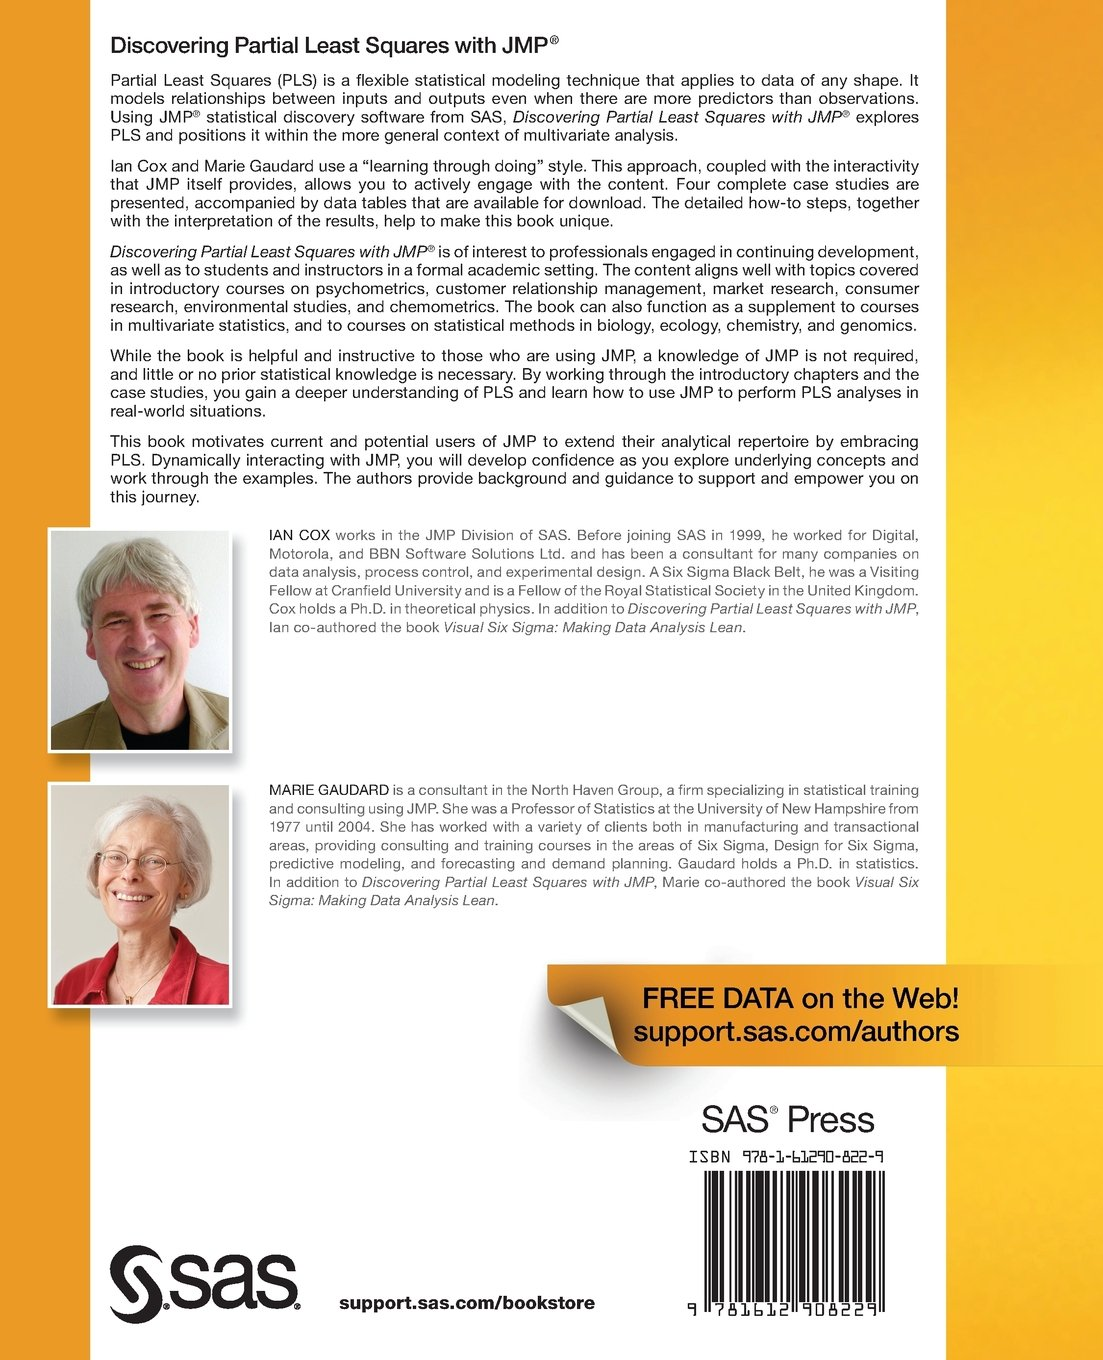 Discovering Partial Least Squares with JMP: Amazon.co.uk: Ian Cox, Marie  Gaudard: 9781612908229: Books